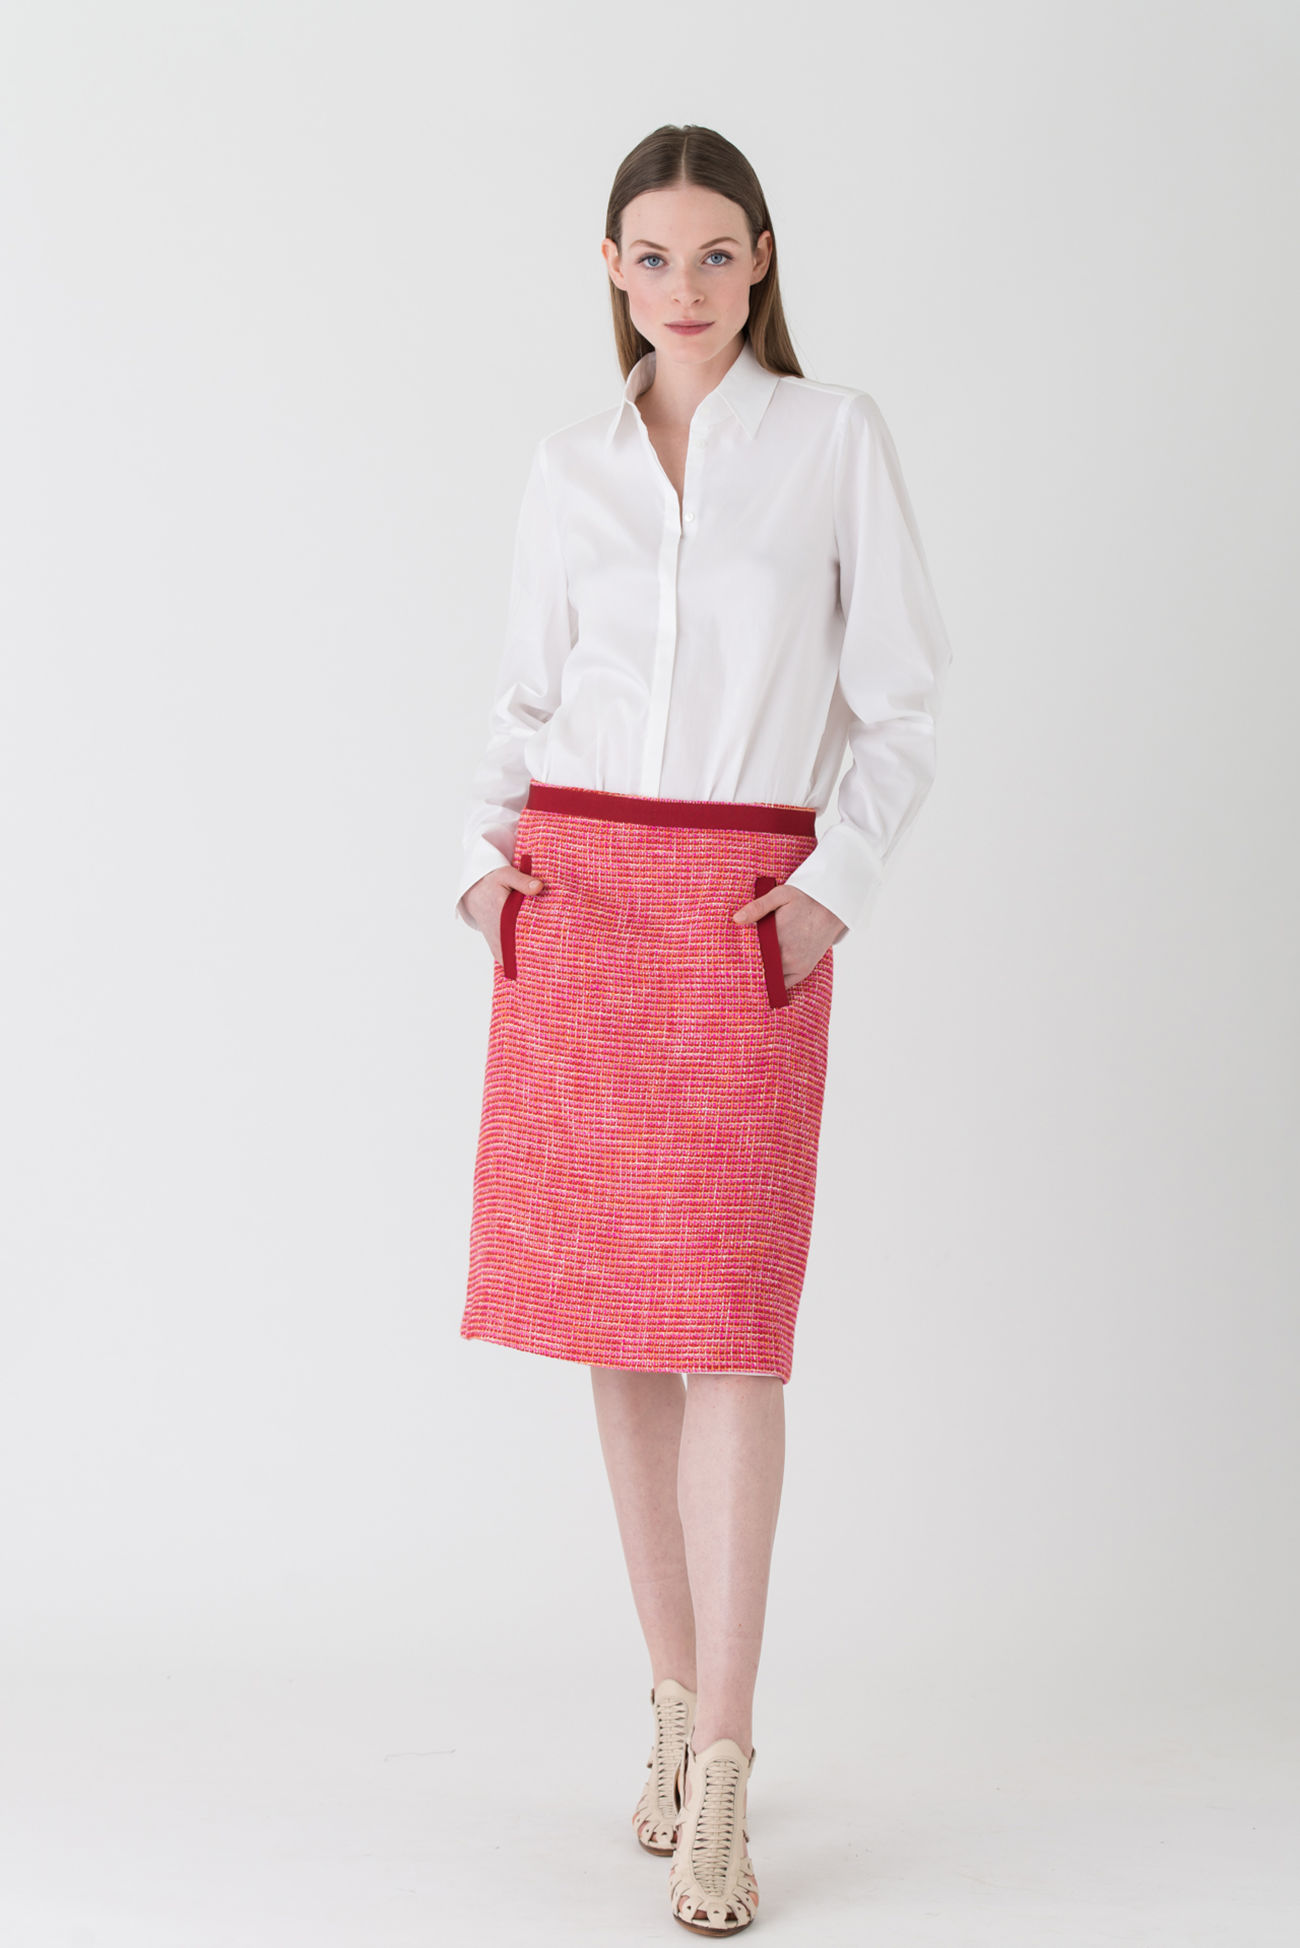 Tasteful tweed skirt with a comfortable A-line